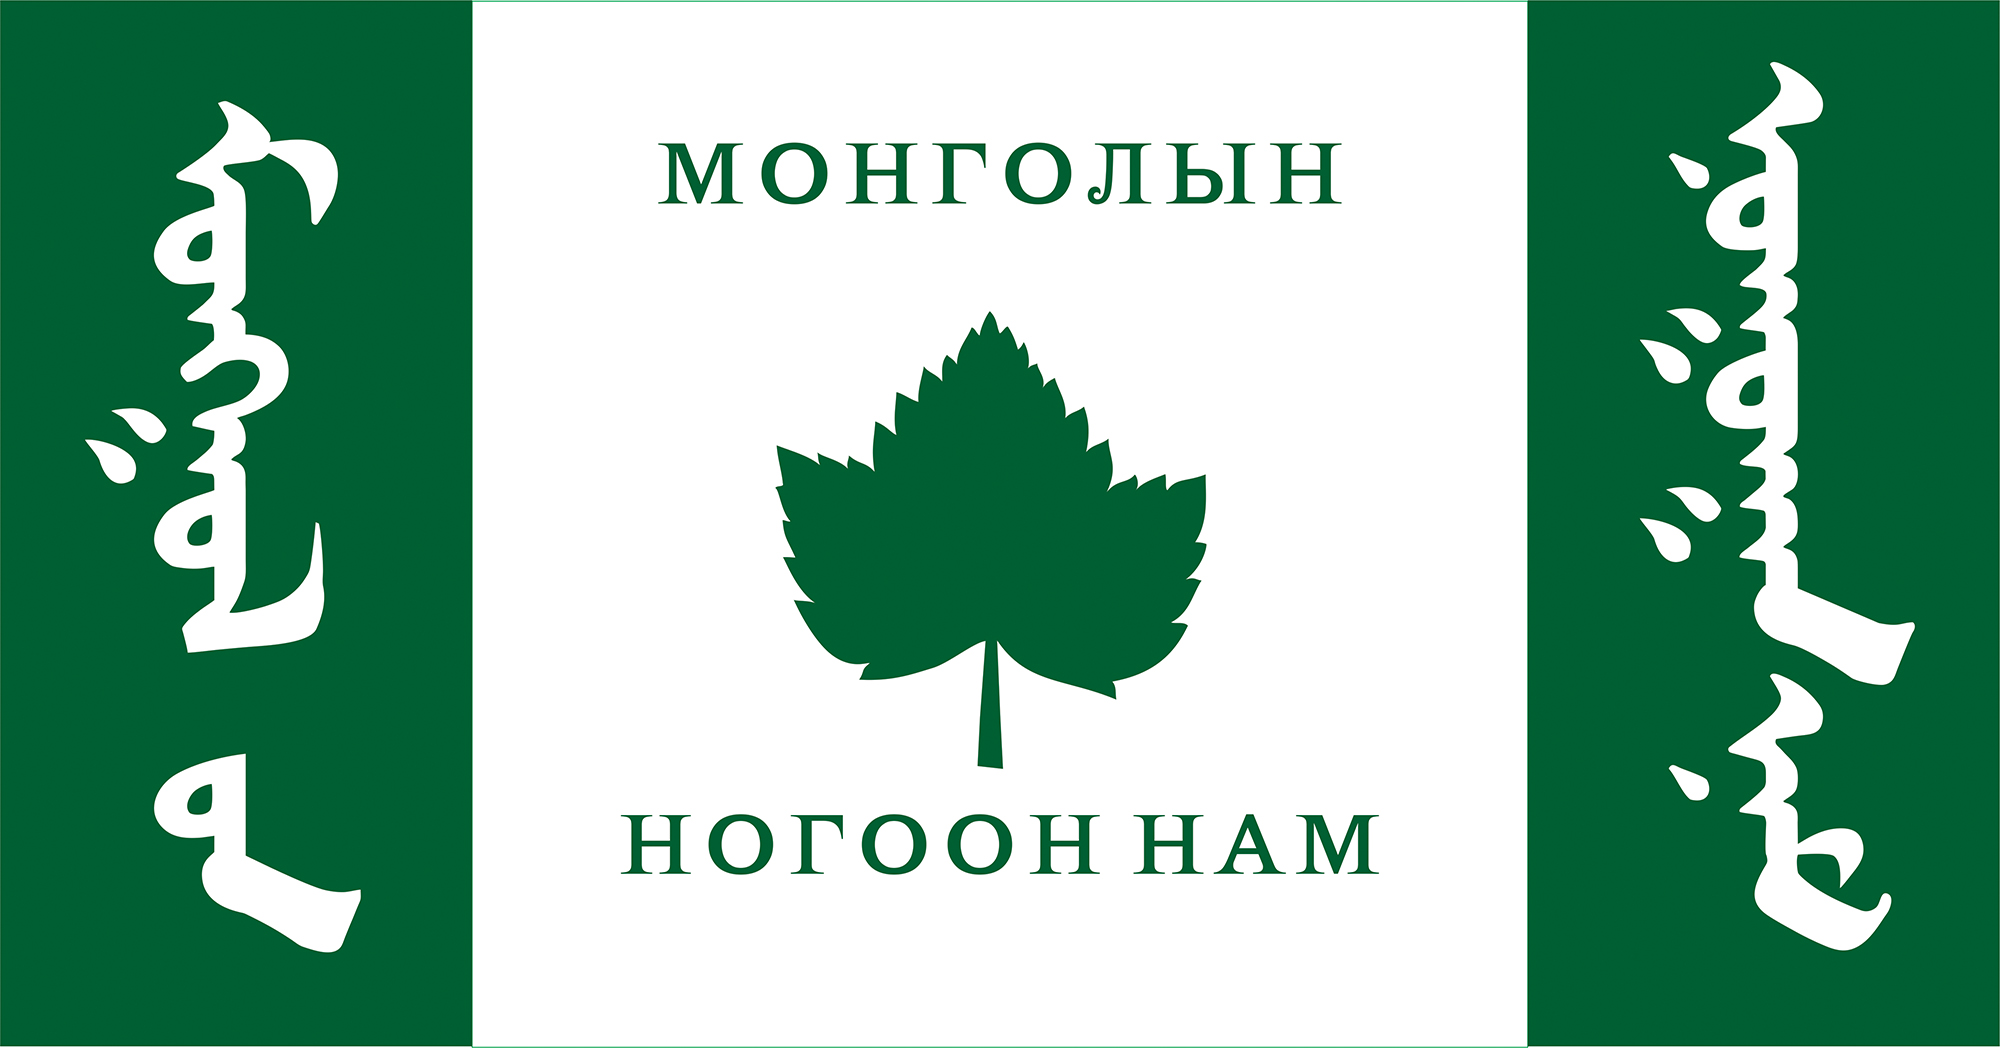 Mongolian Green party